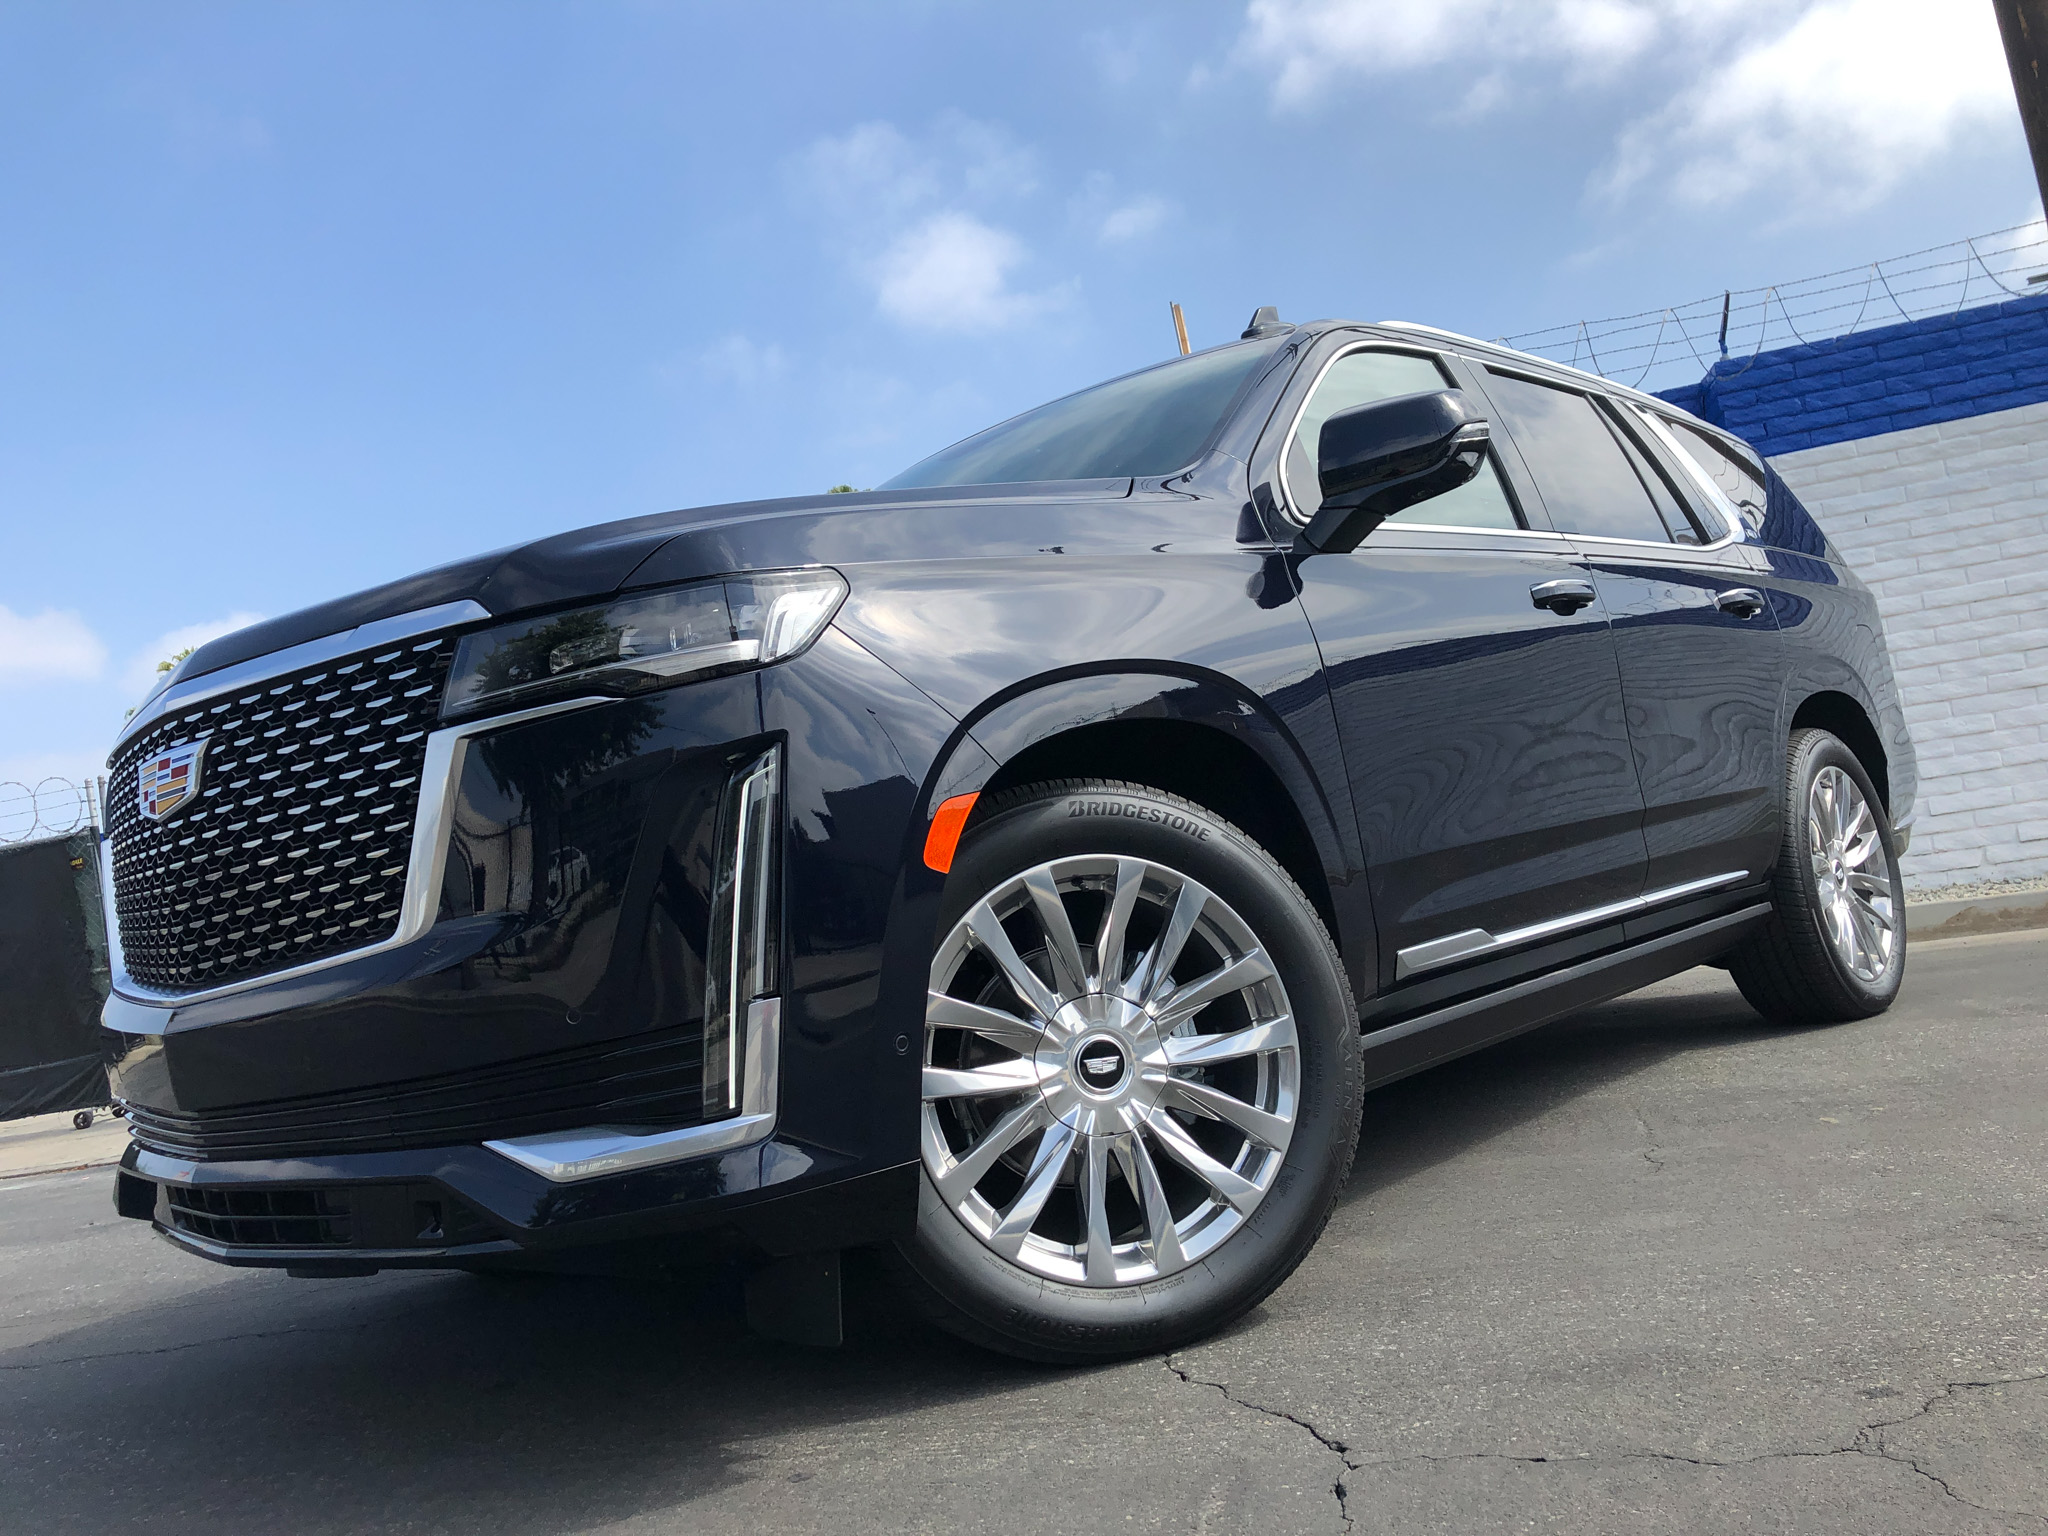 2021 Cadillac Escalade 600D (Diesel) First Drive: Pick This One